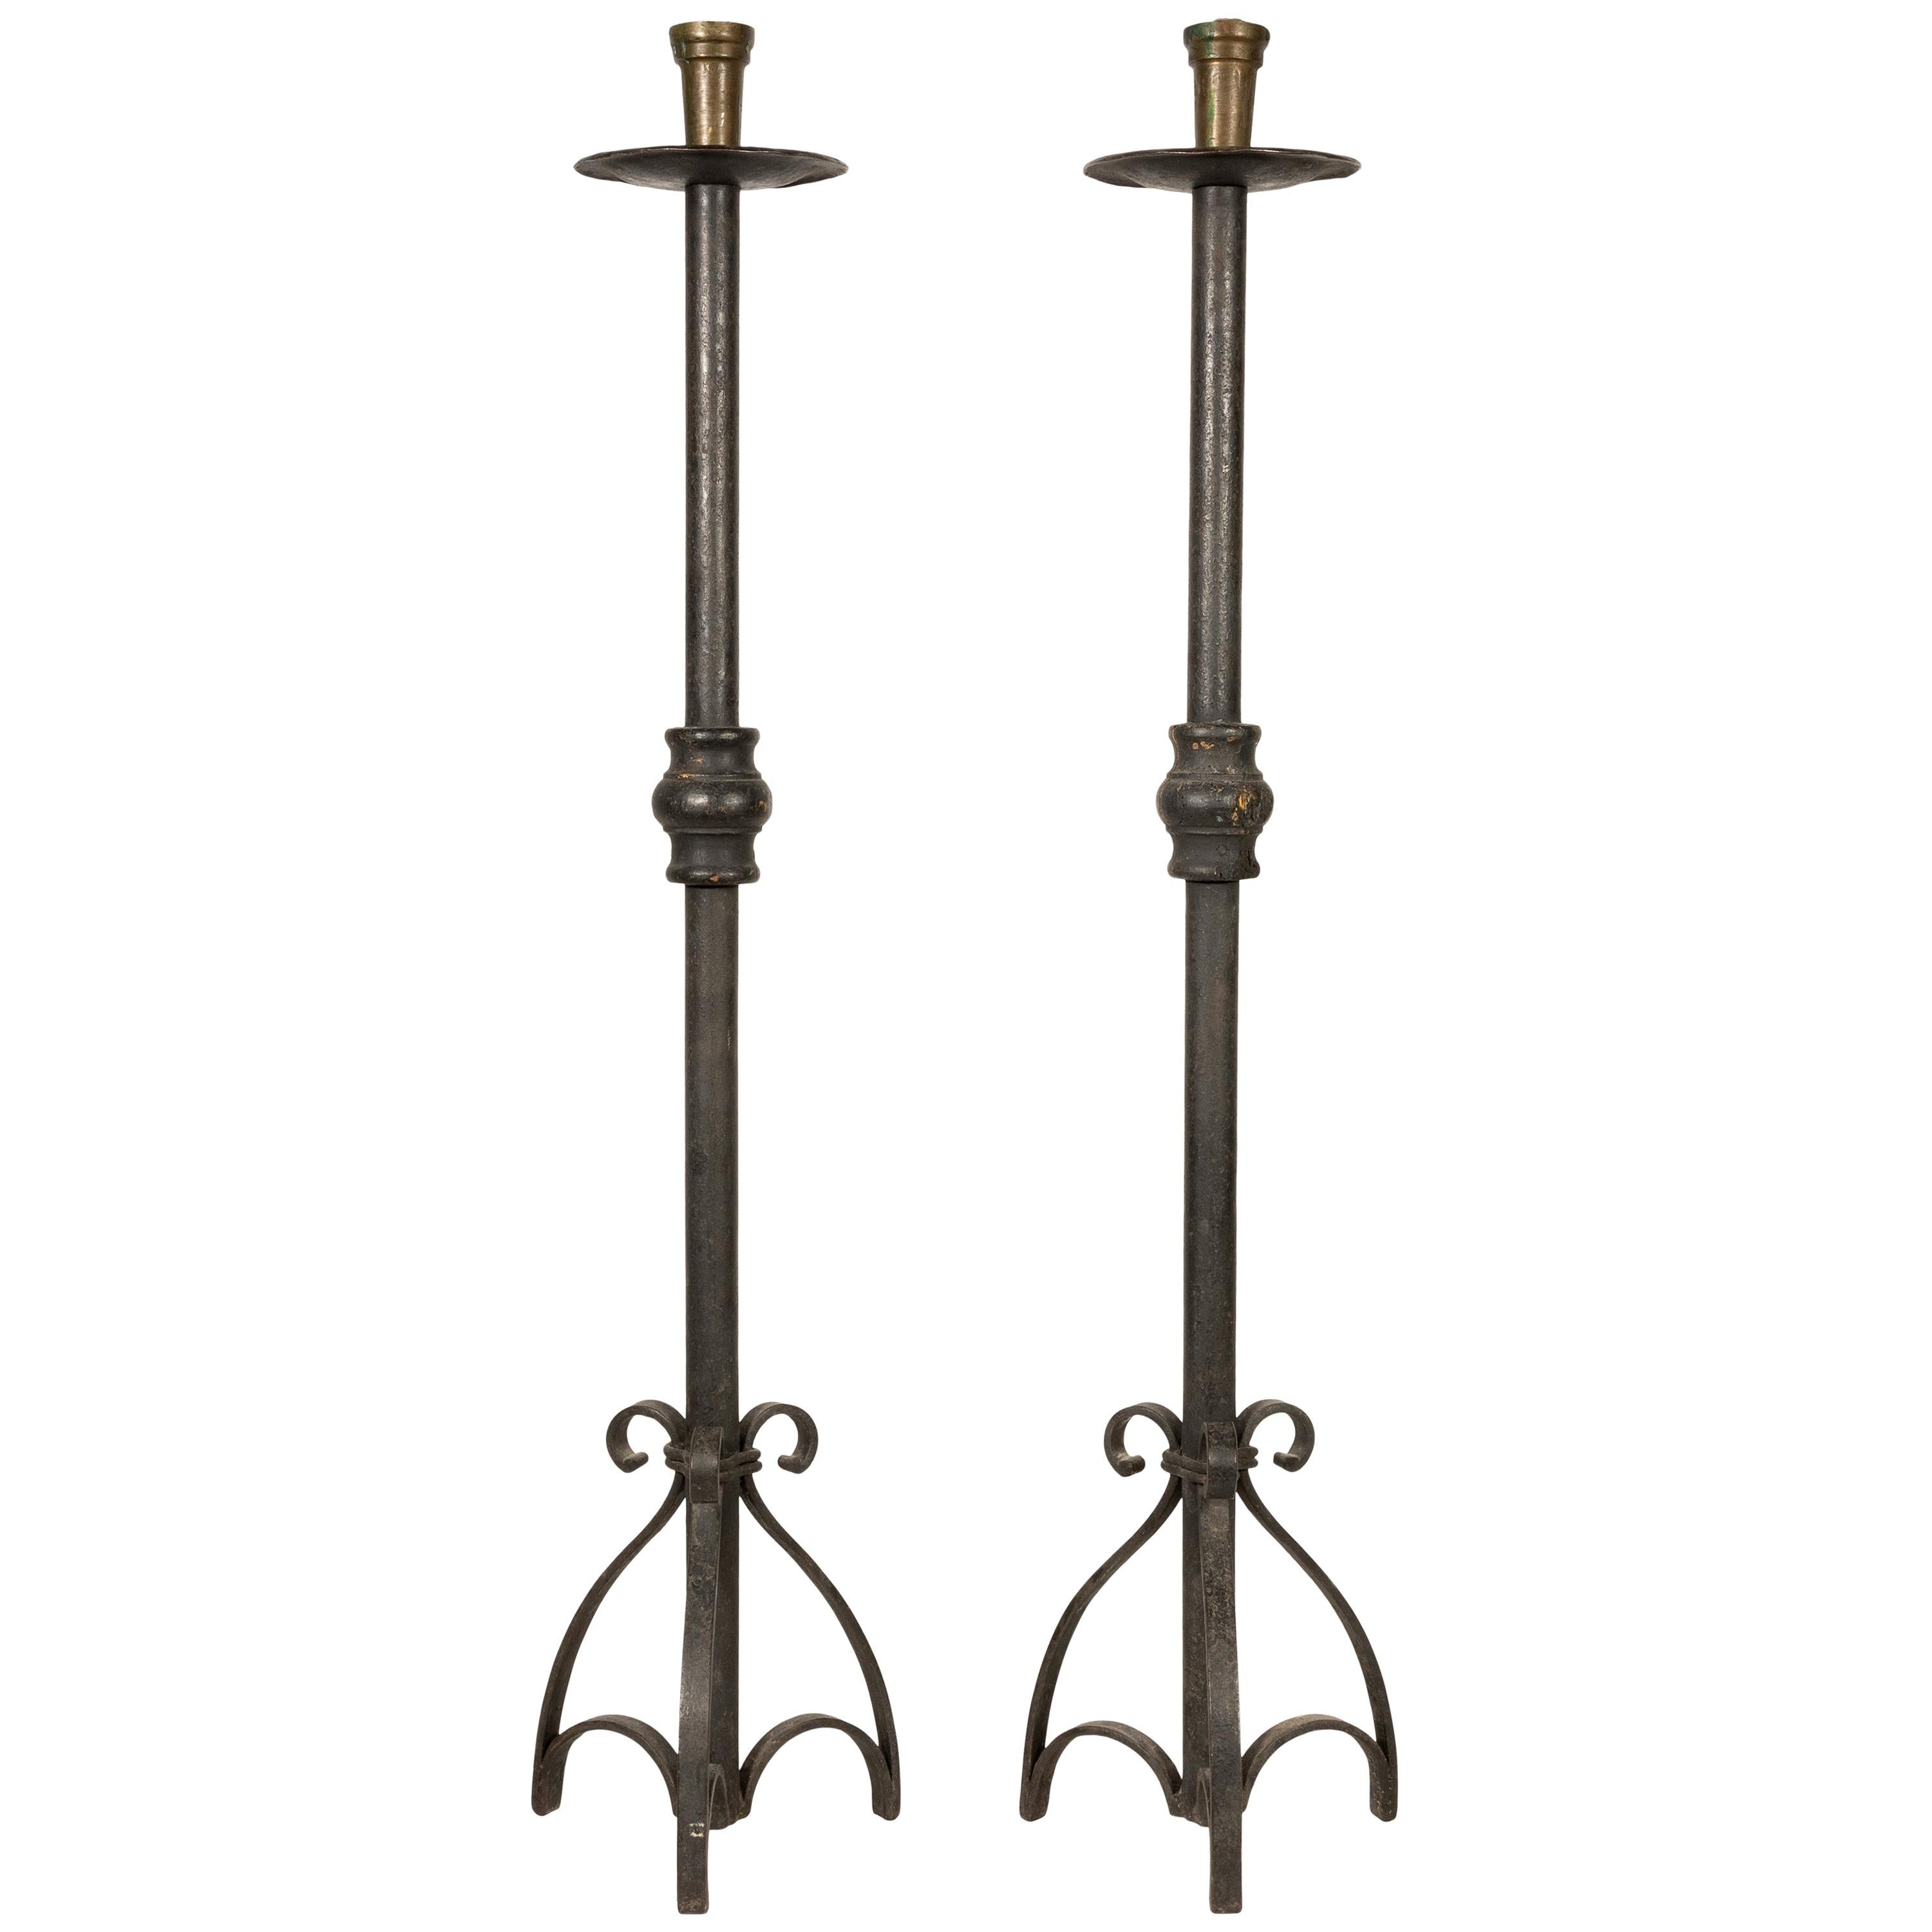 19th Century Wrought Iron Candle Holders